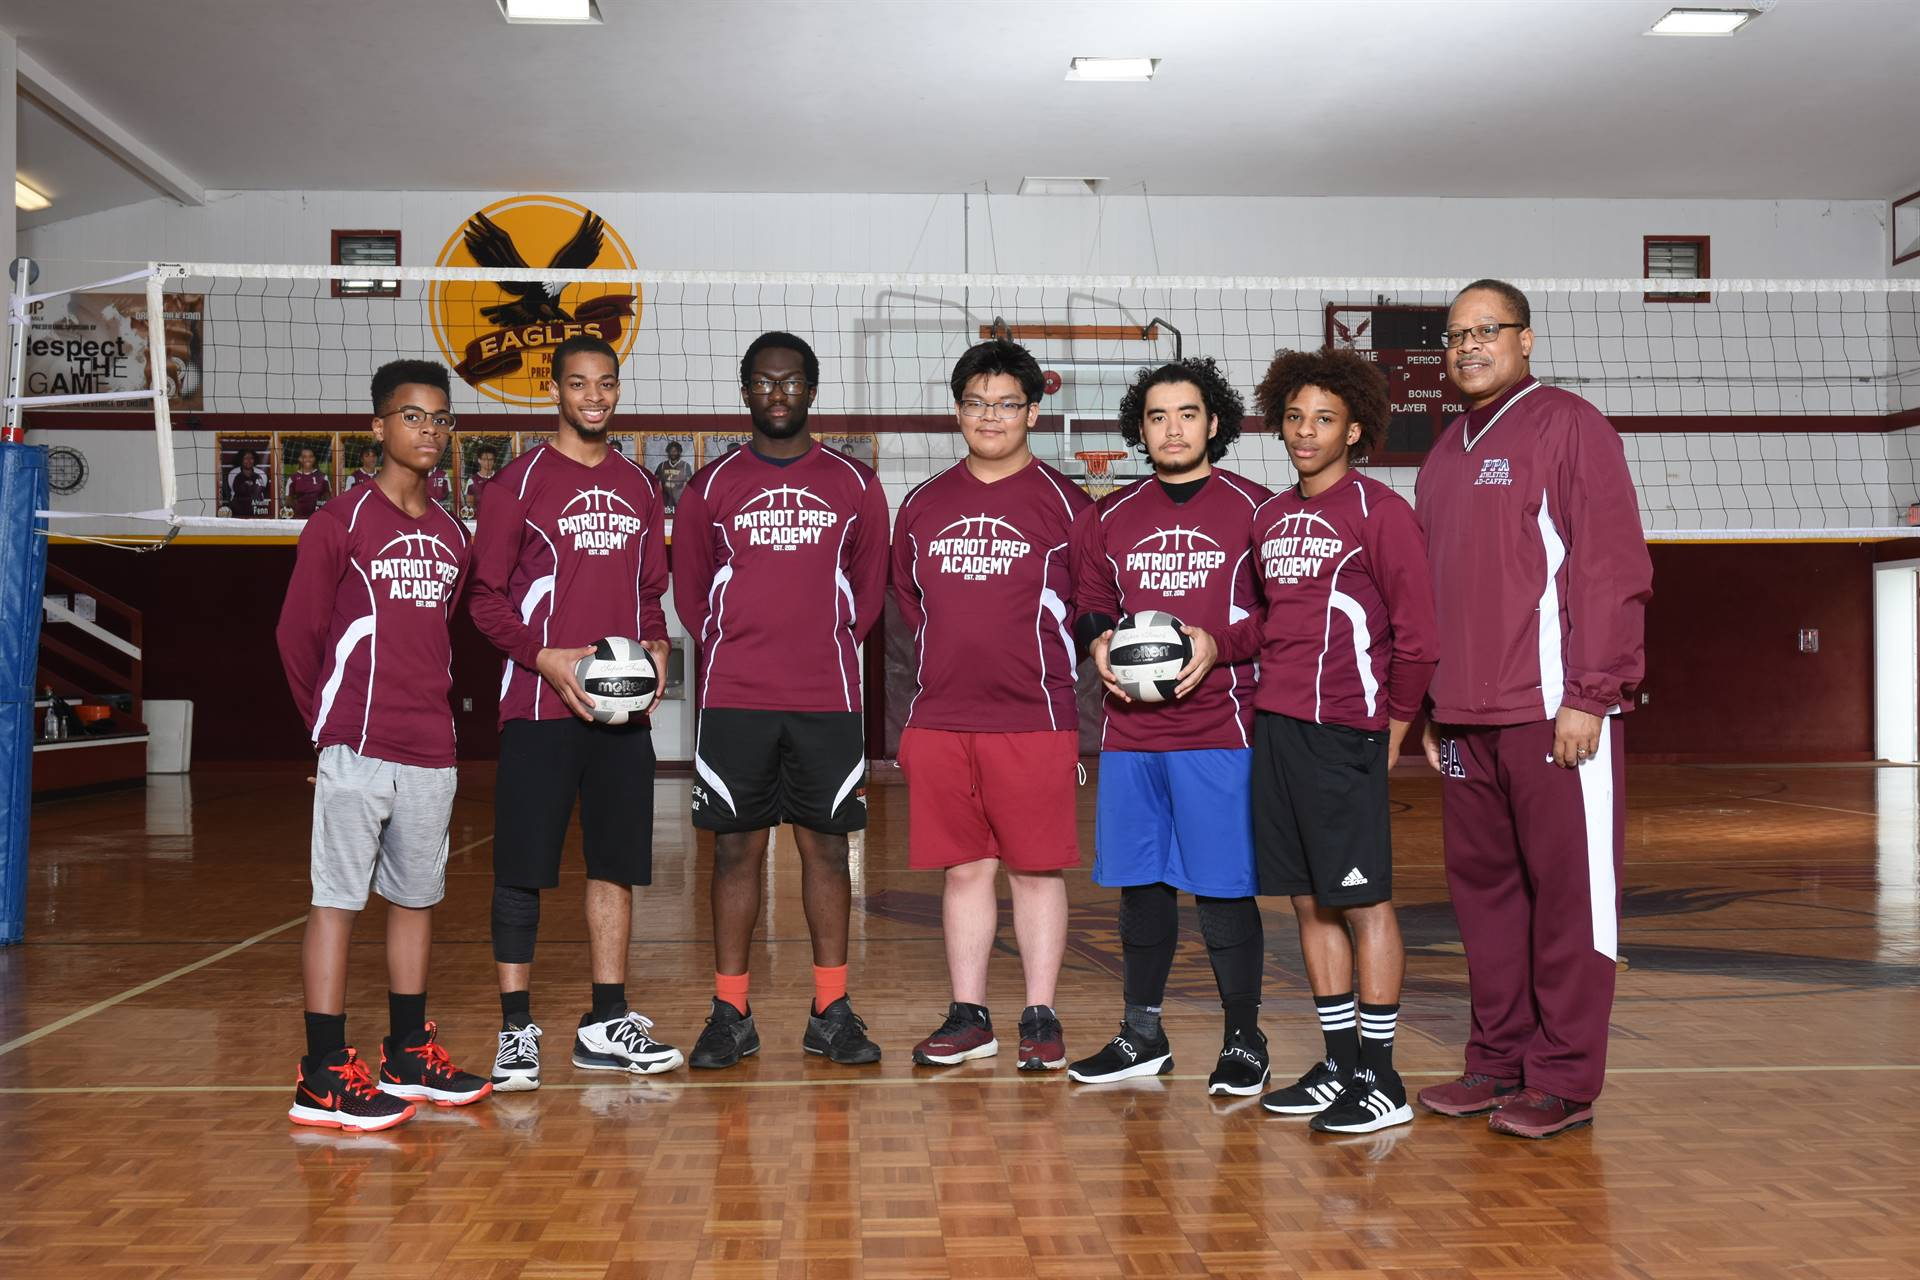 6 students in volleyball uniforms and coach in gymnasium